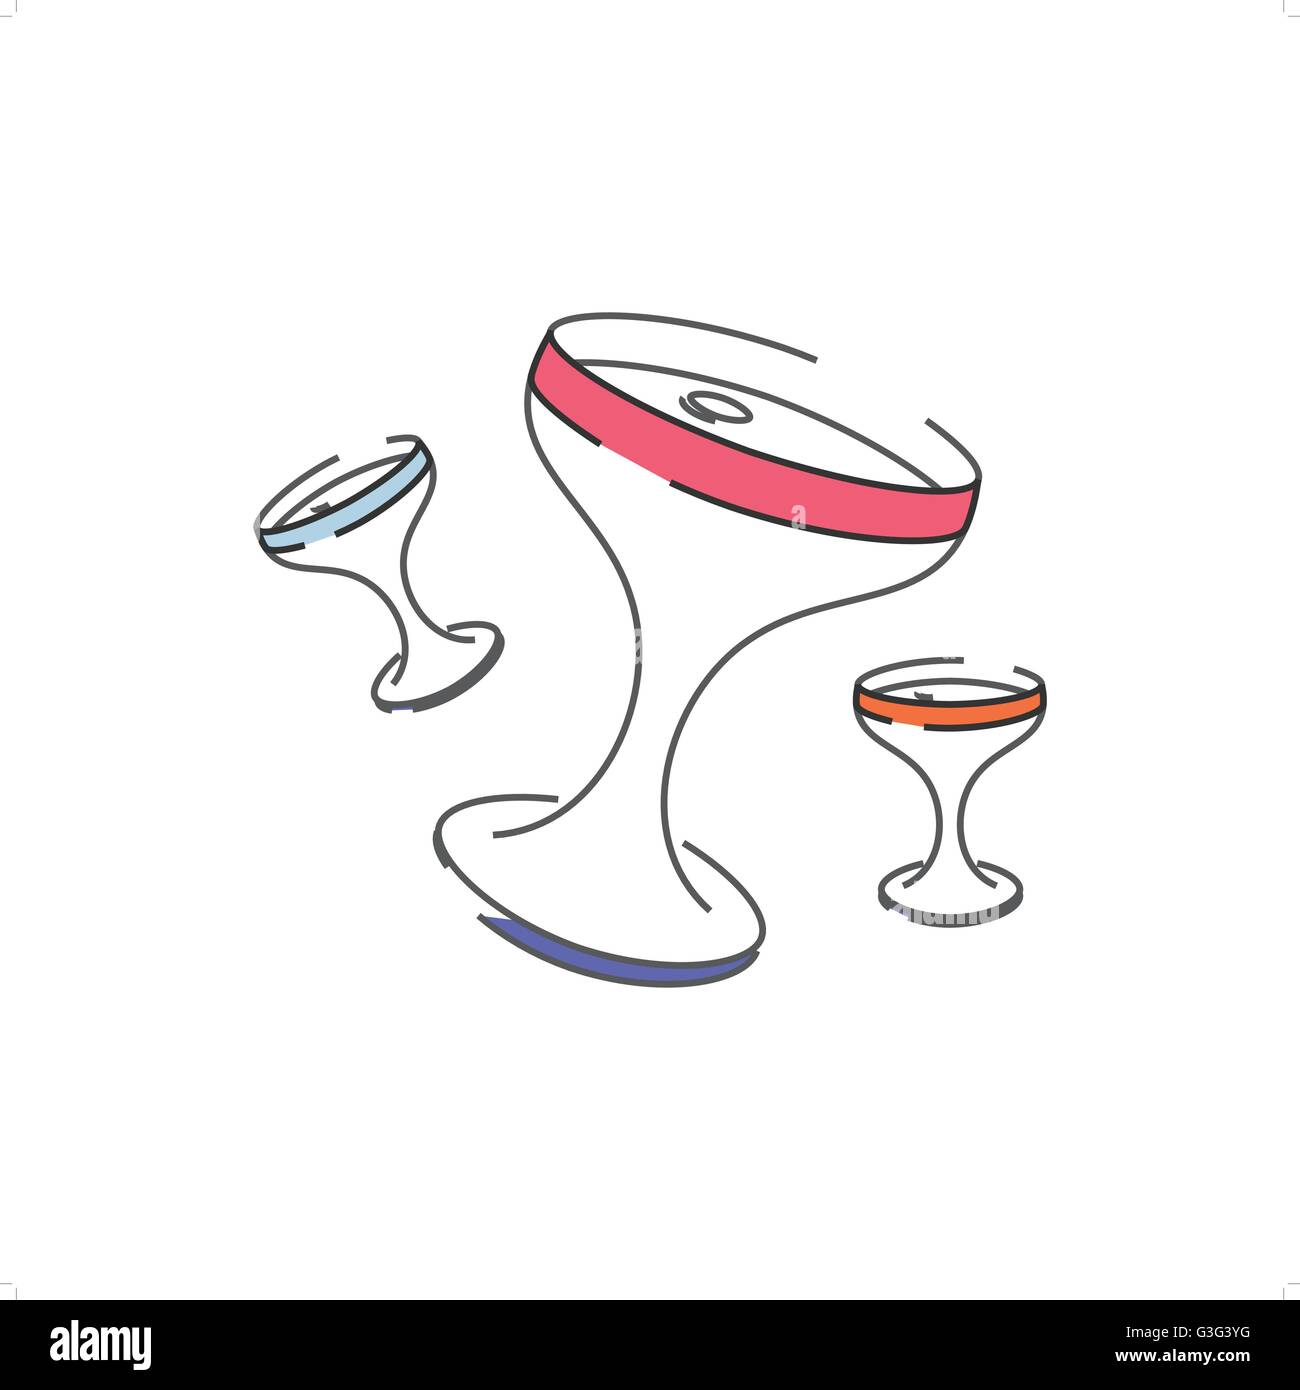 Stylized line drawing colorful celebration glasses vector illustration isolated on white background. - Stock Vector